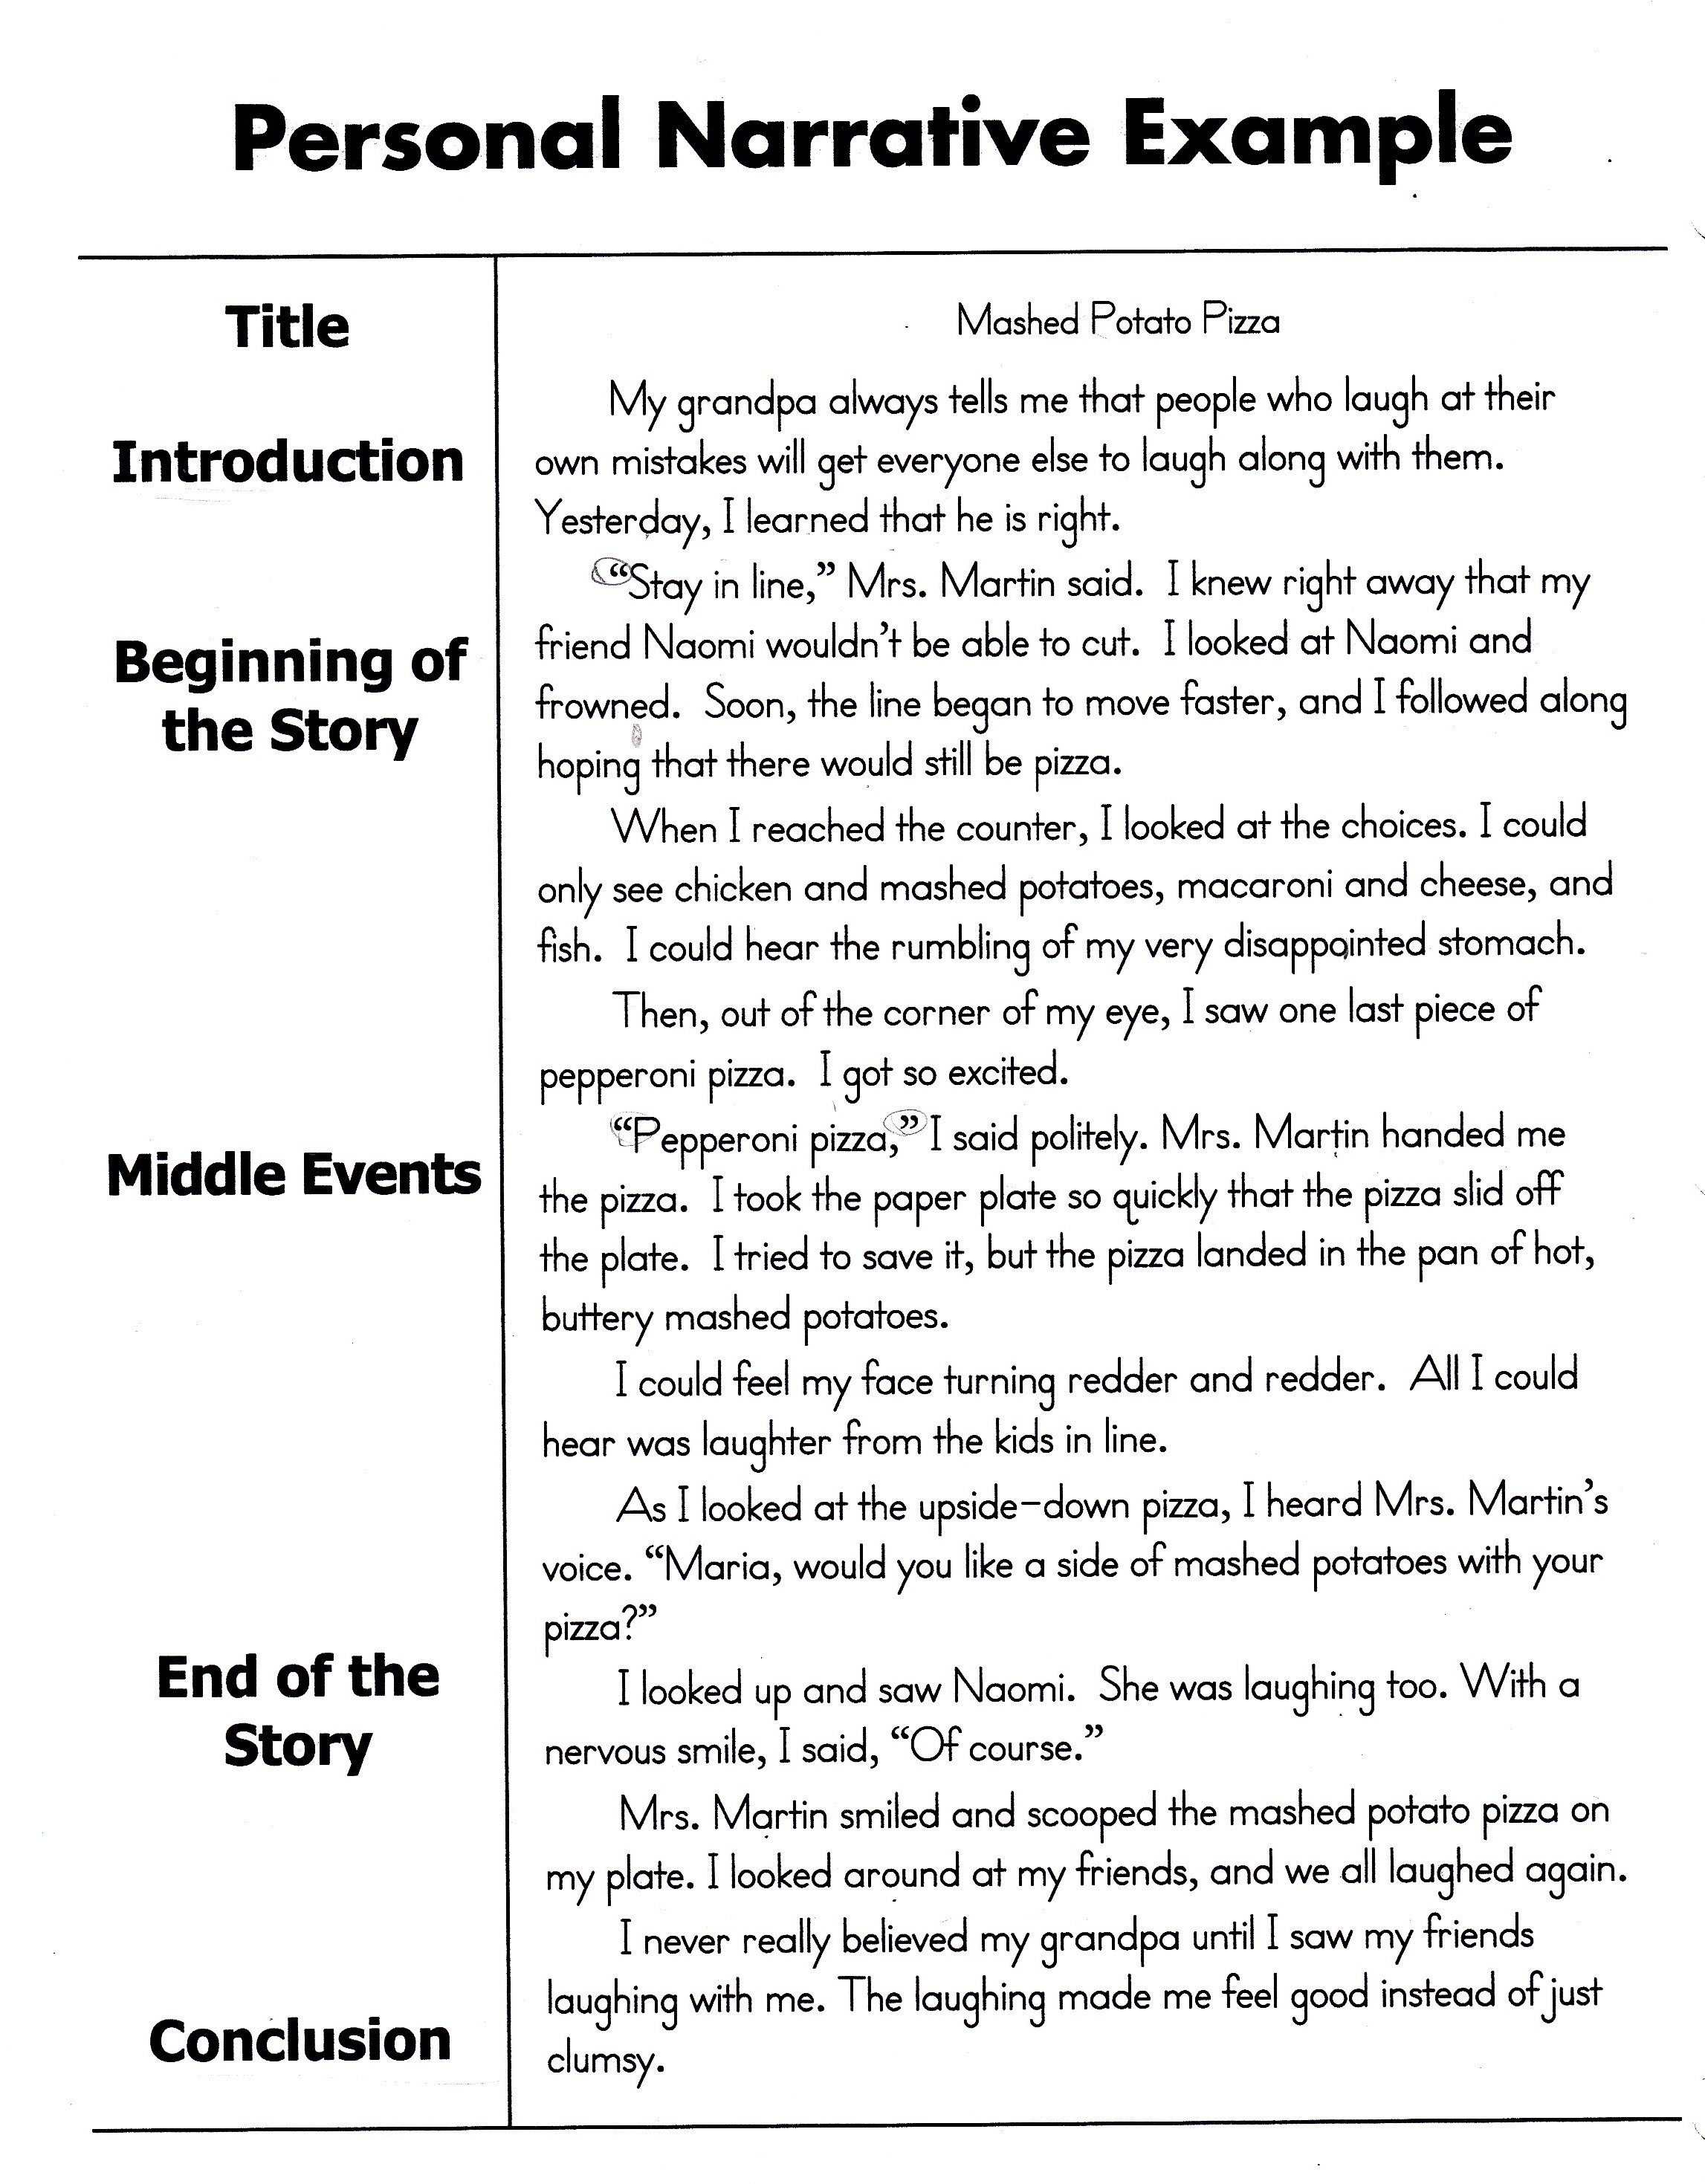 006 Narrative Essay Format Example Unique Personal Examples For Middle School High Pdf Full